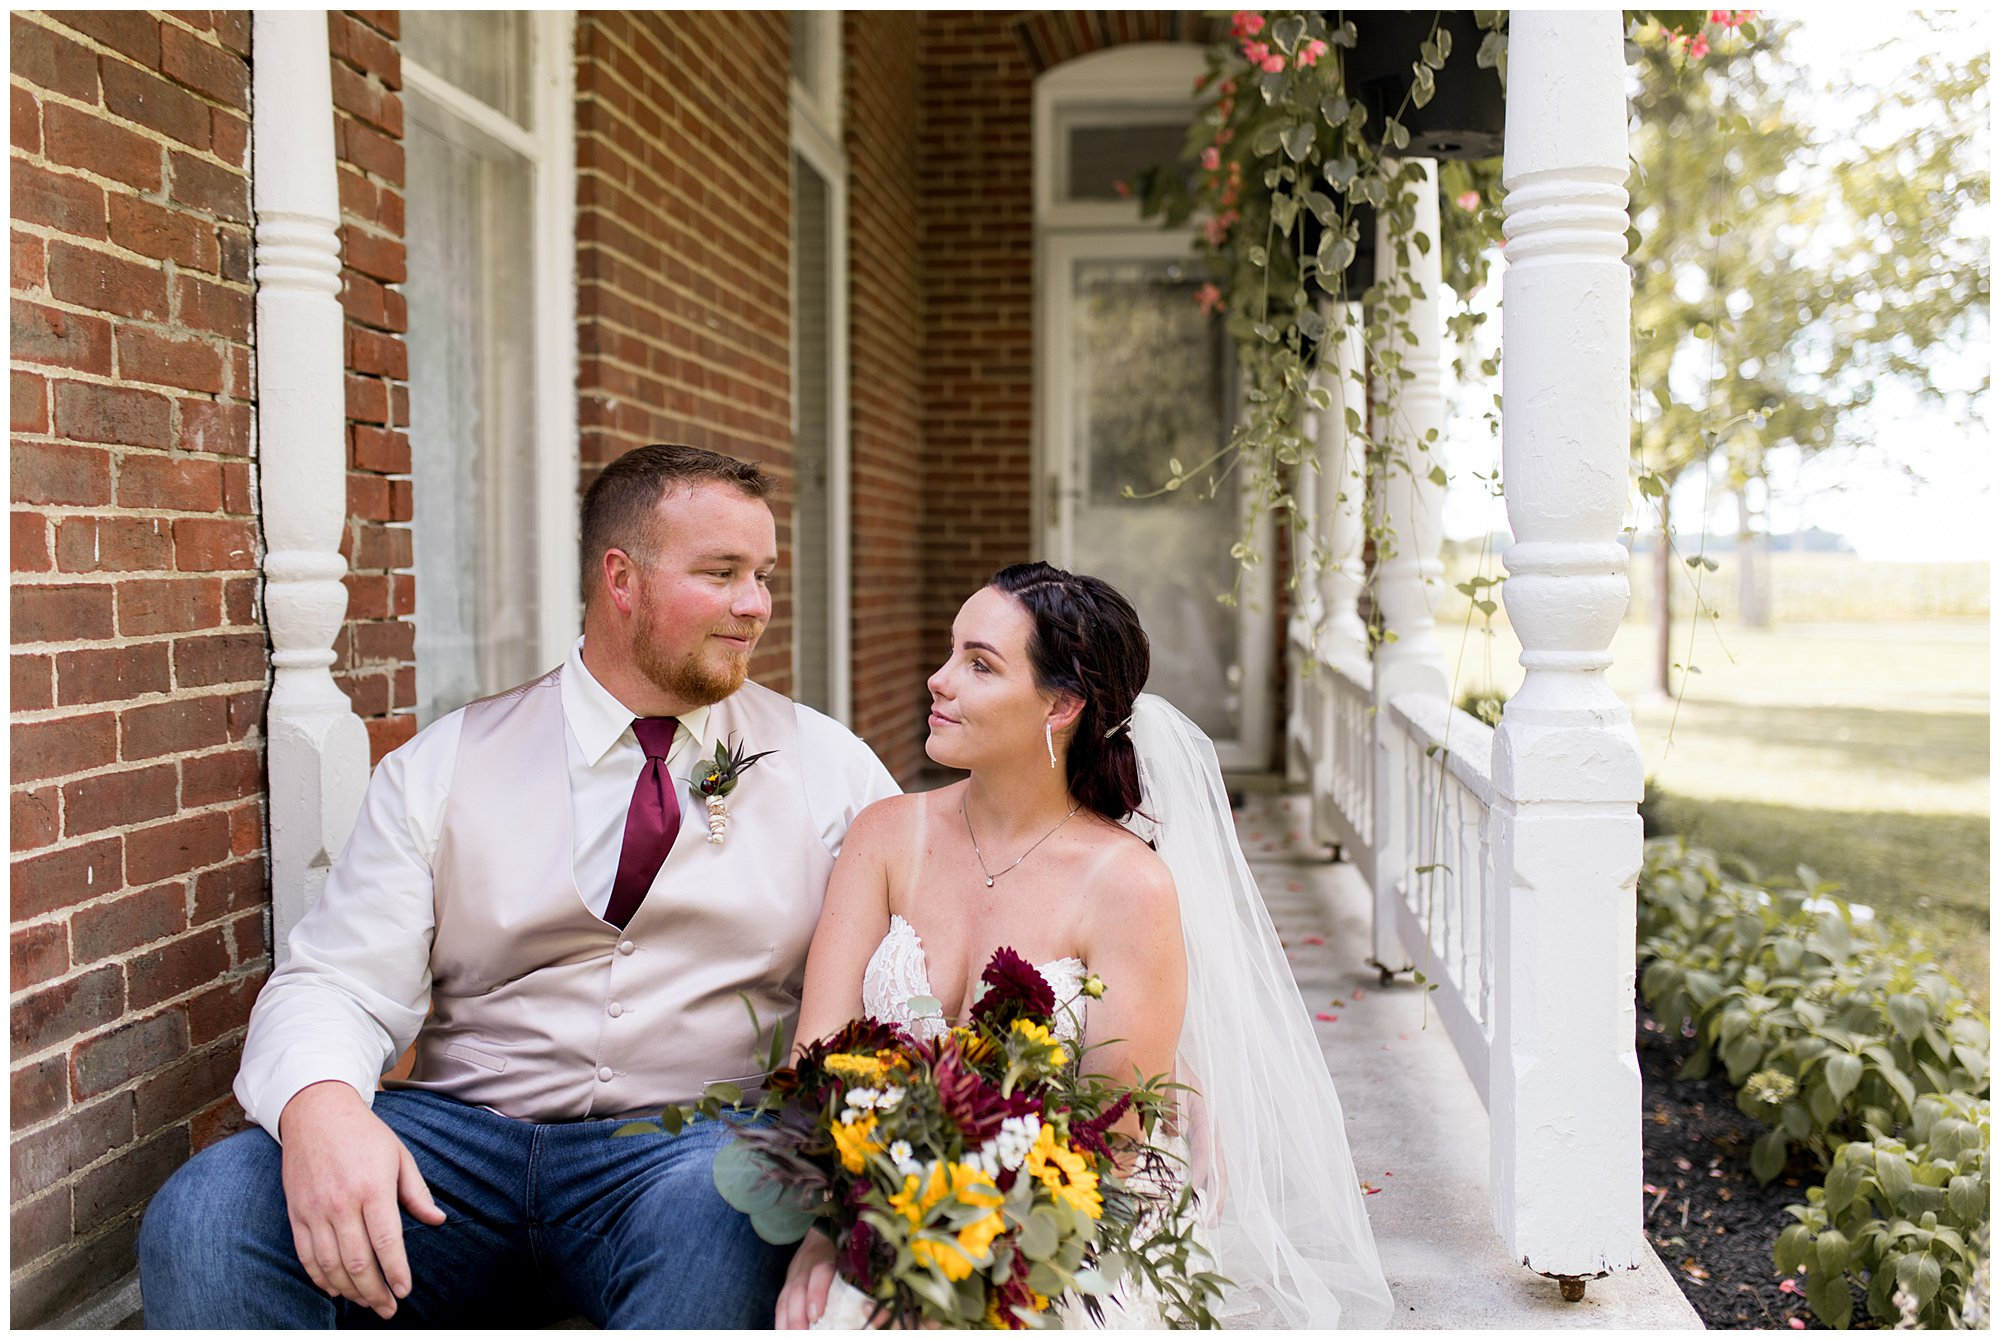 Bride and groom at Legacy Barn before wedding ceremony